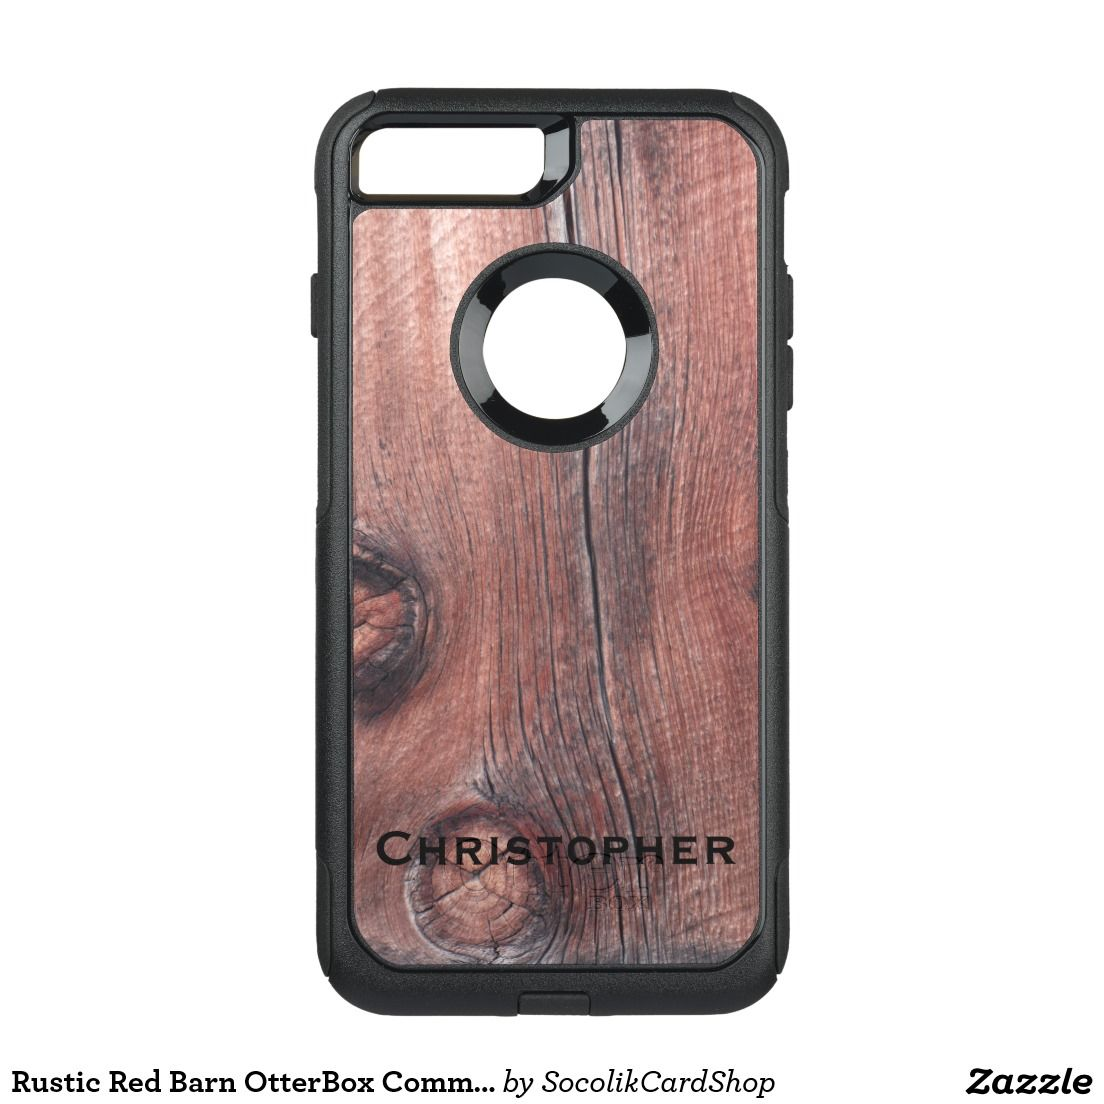 Create your own otterbox case iphone 7 plus